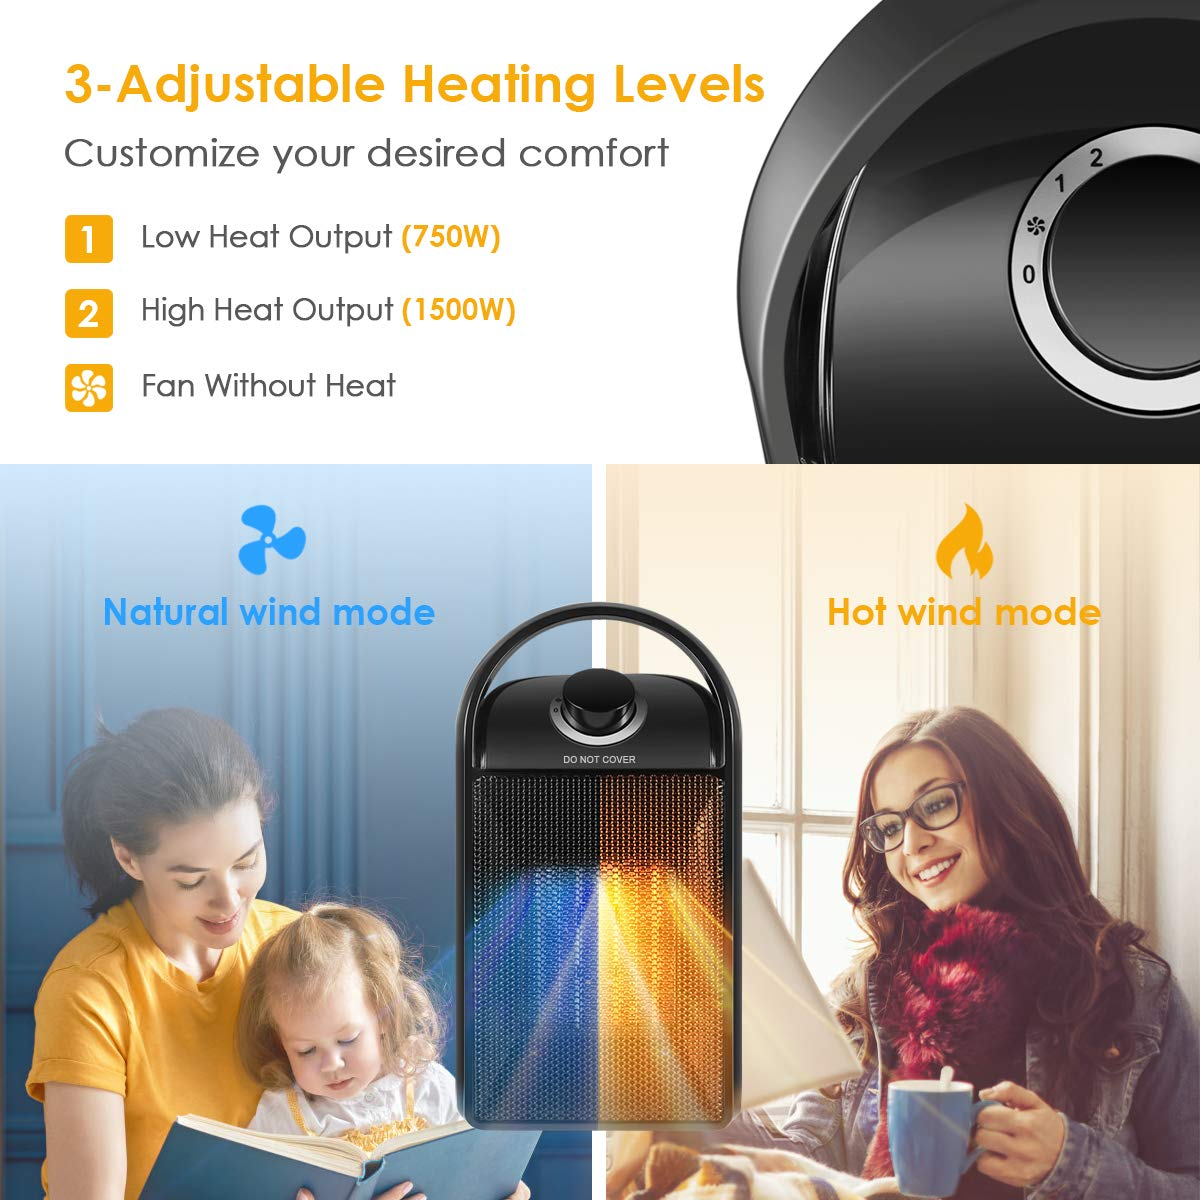 Electric Heater Fast Heating Fan with Auto Shut Off Portable with Adjustable Thermostat for Home Bedroom Personal Desk Heaters for Office Space Heater